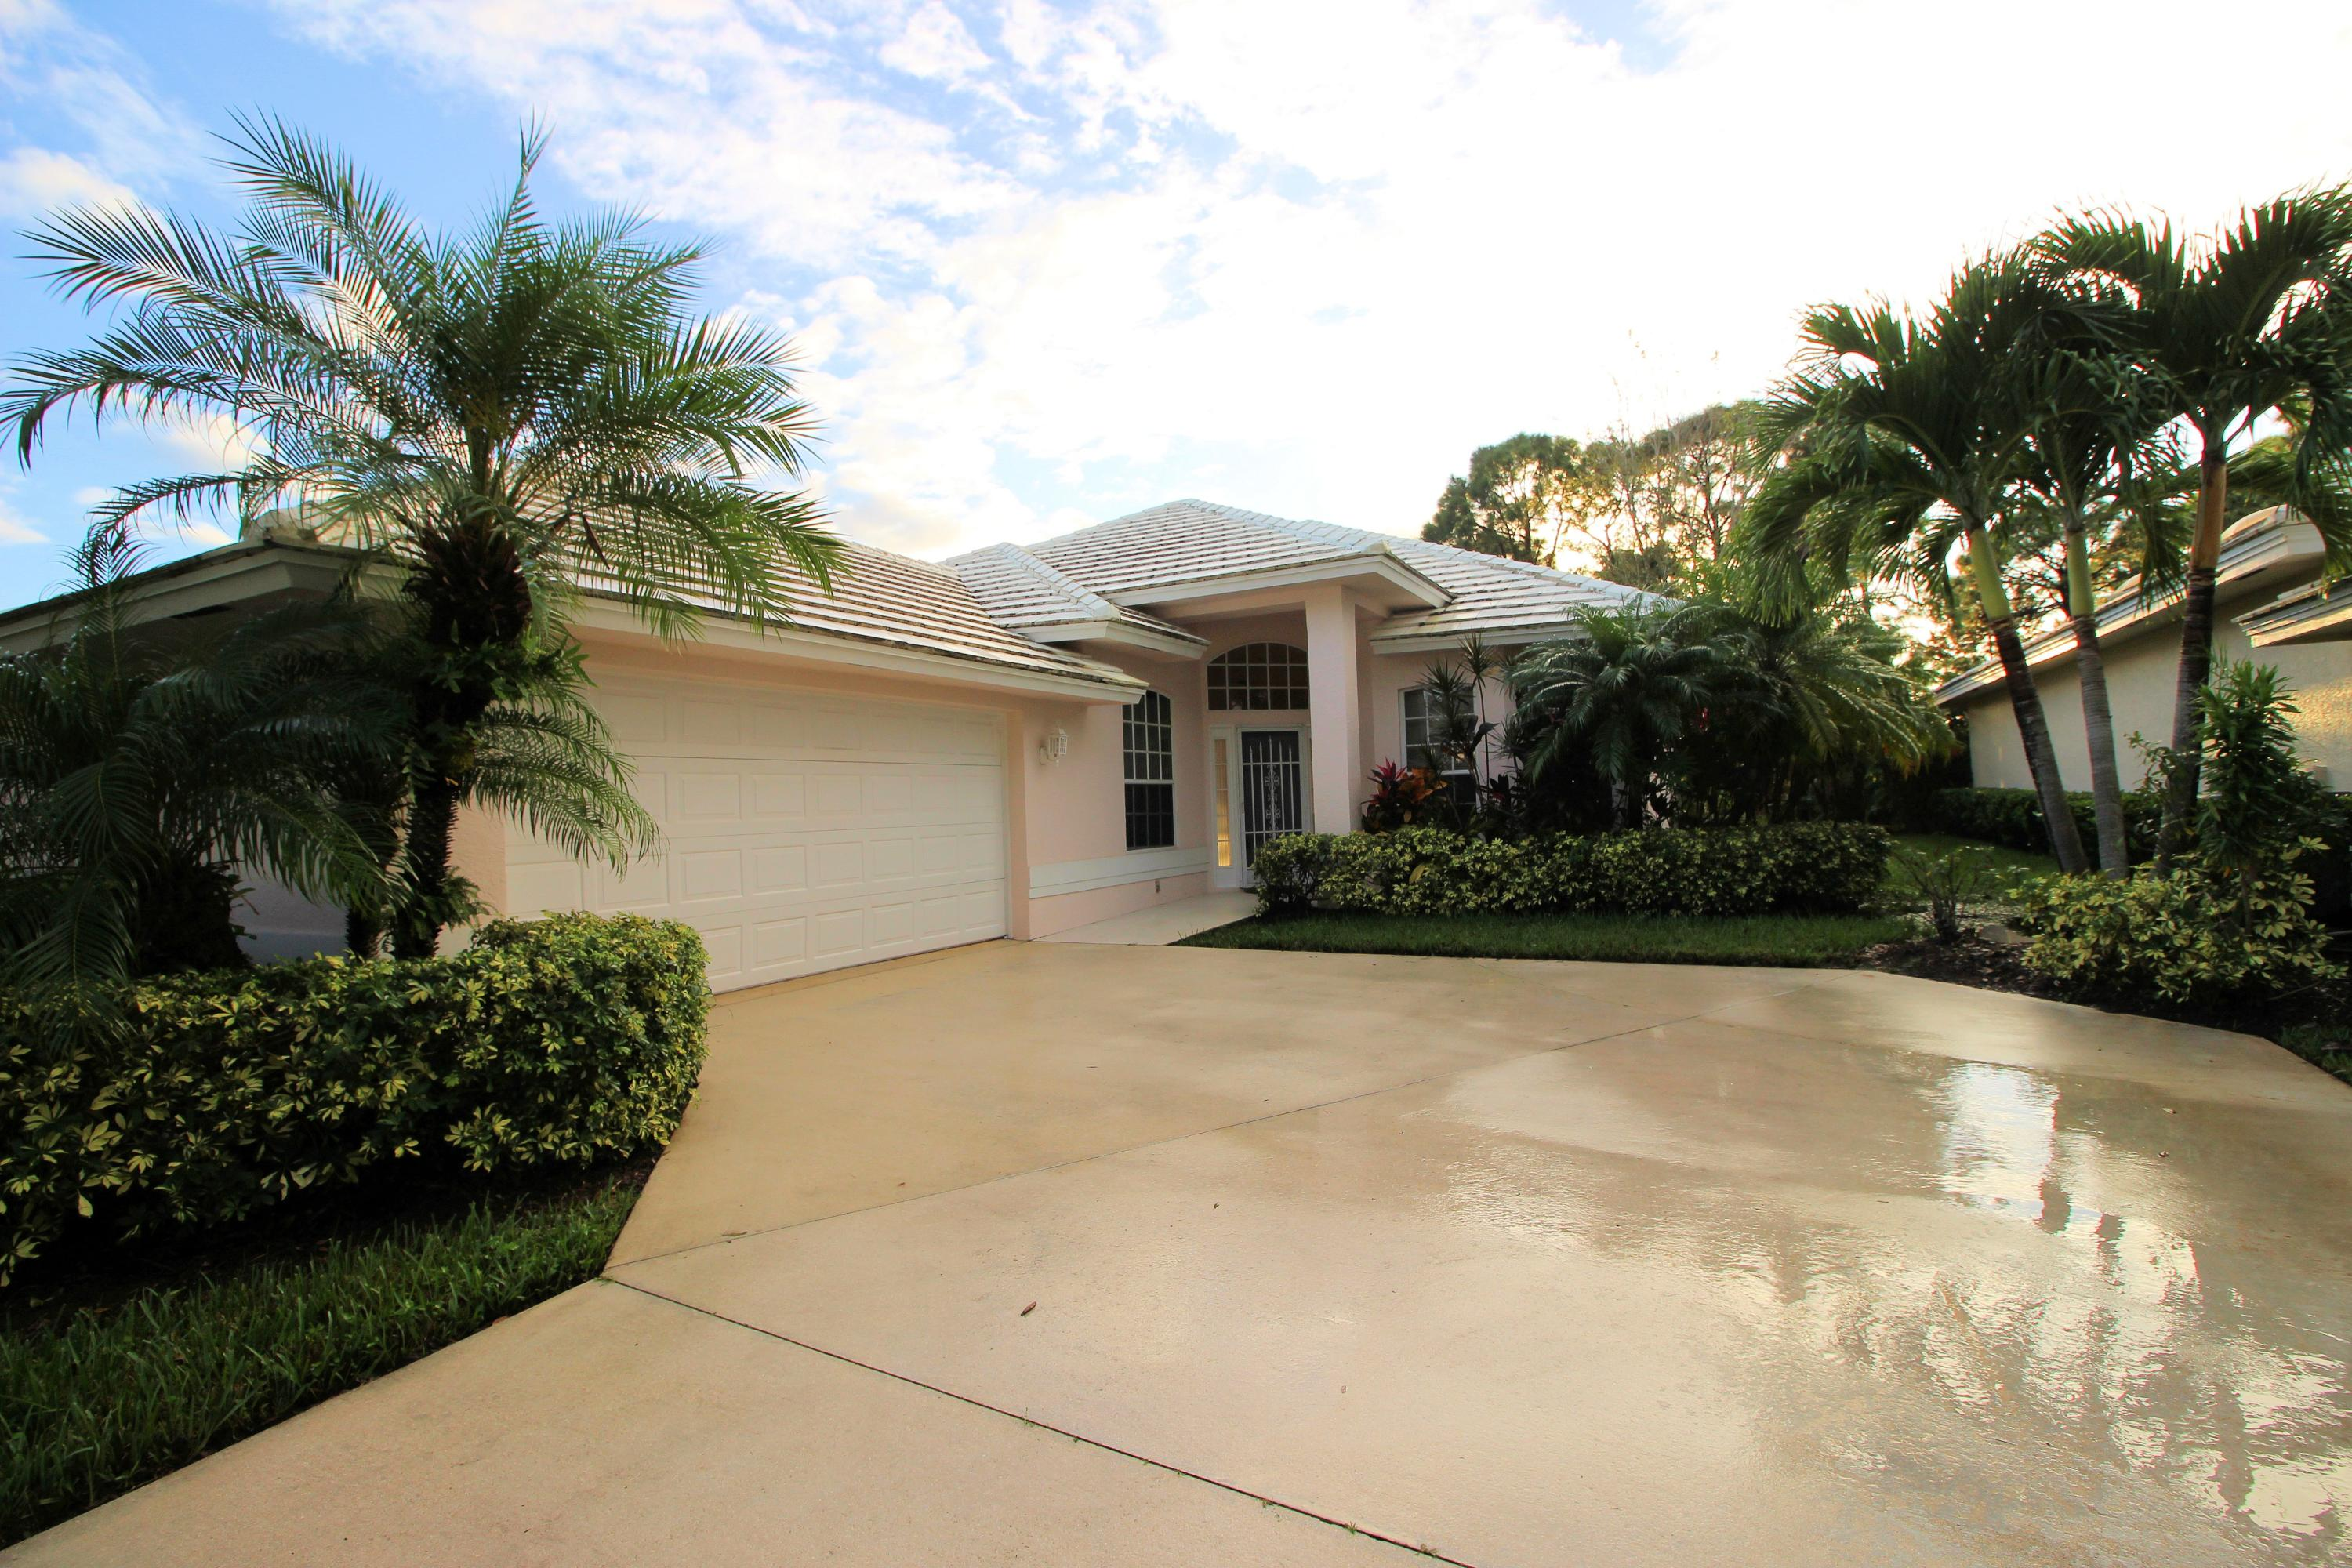 Home for sale in Fairway Isles Port Saint Lucie Florida